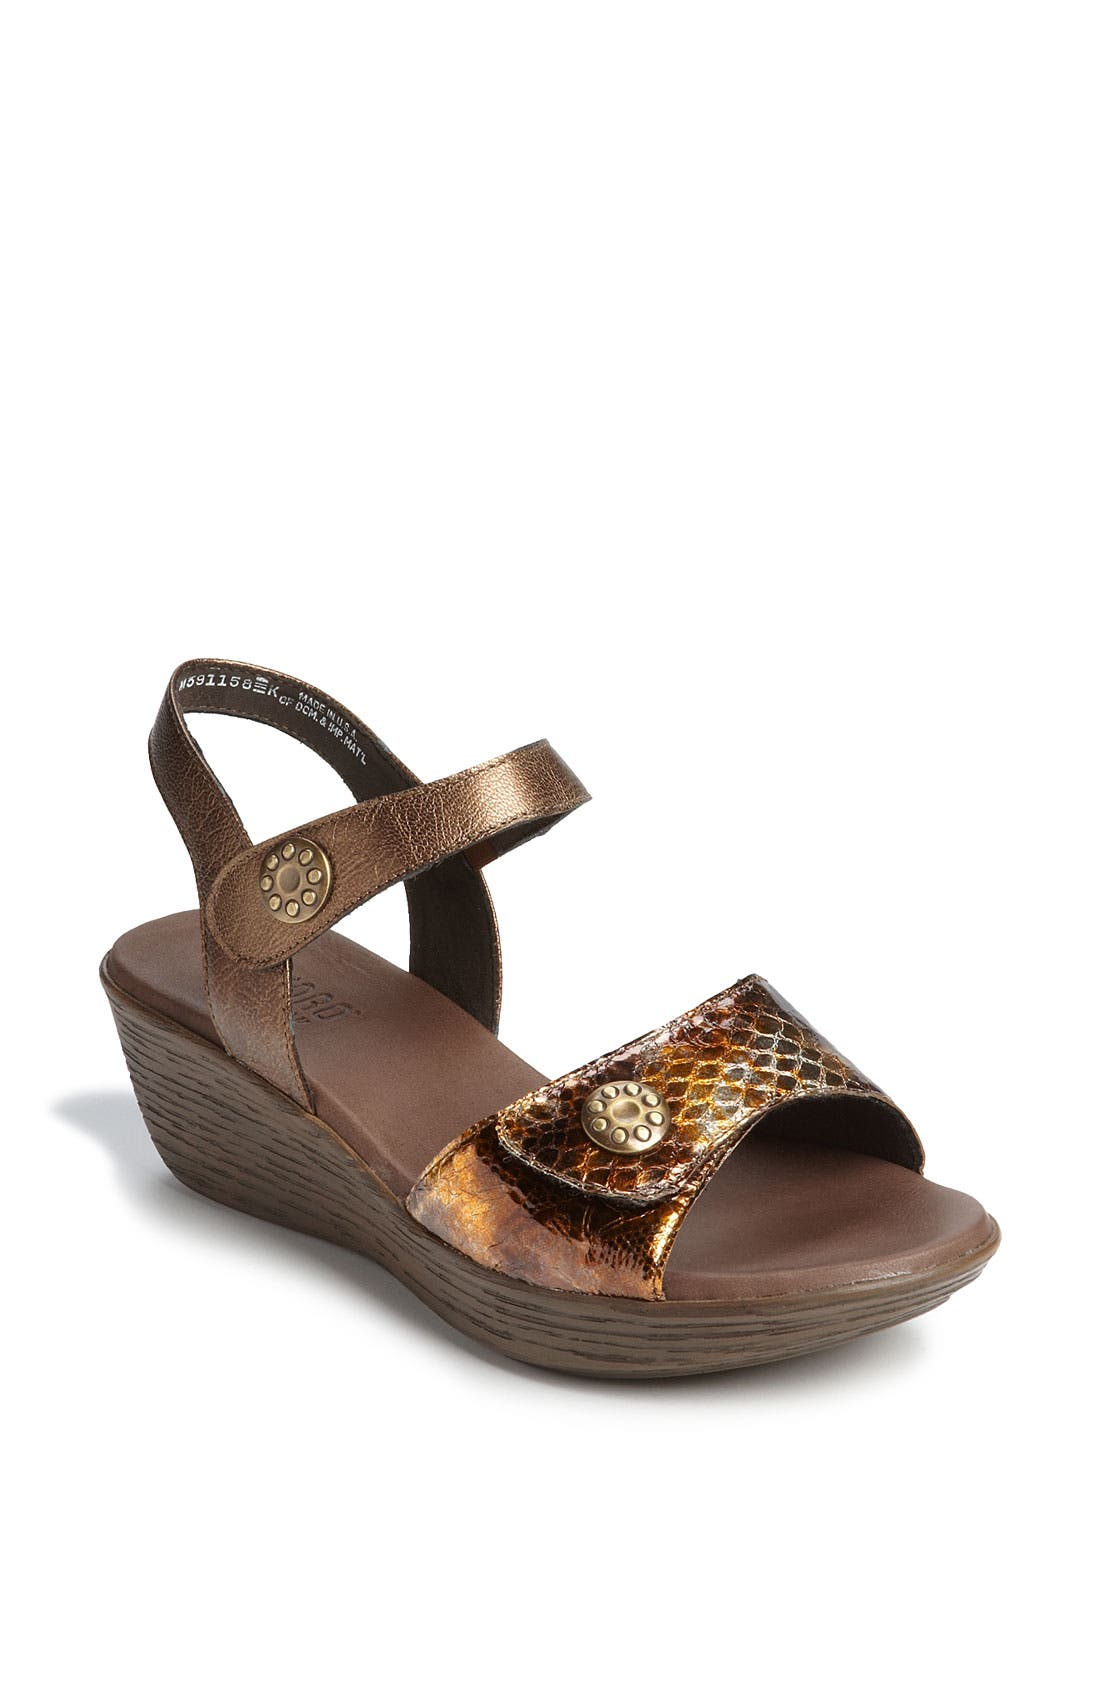 Alternate Image 1 Selected - Munro 'Tyra' Sandal